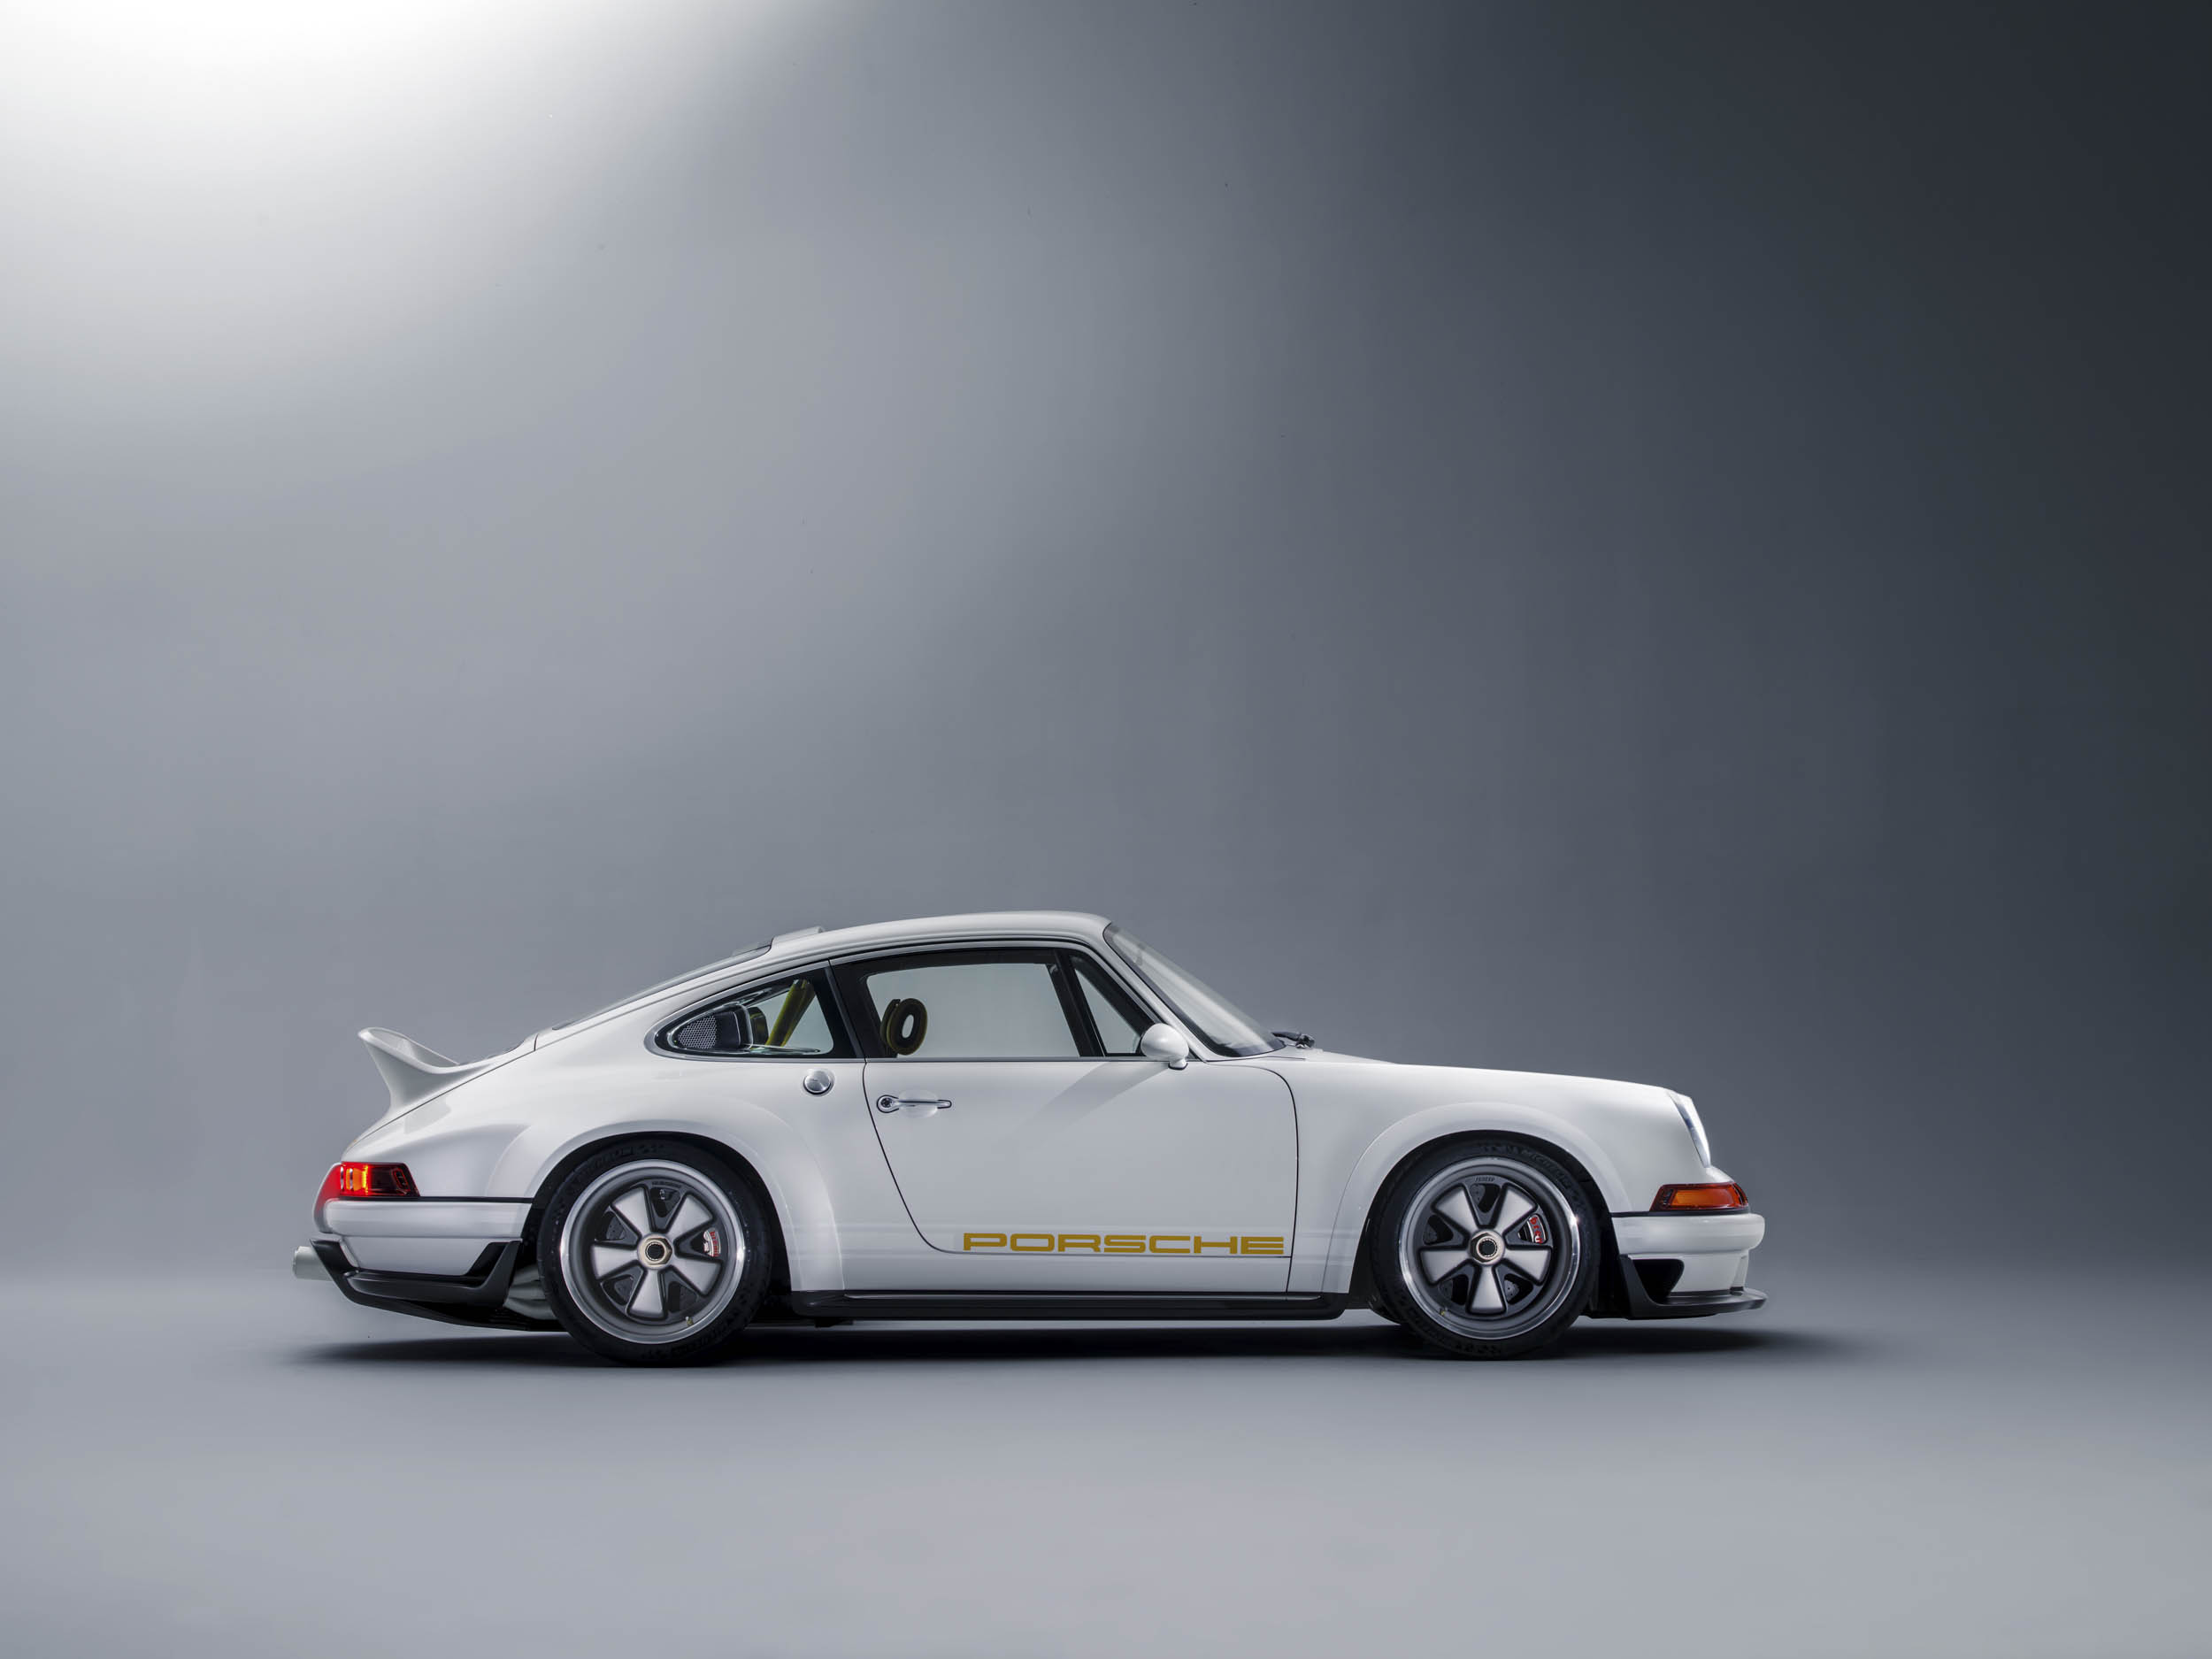 1990 Porsche 911 (964), reimagined by Singer profile